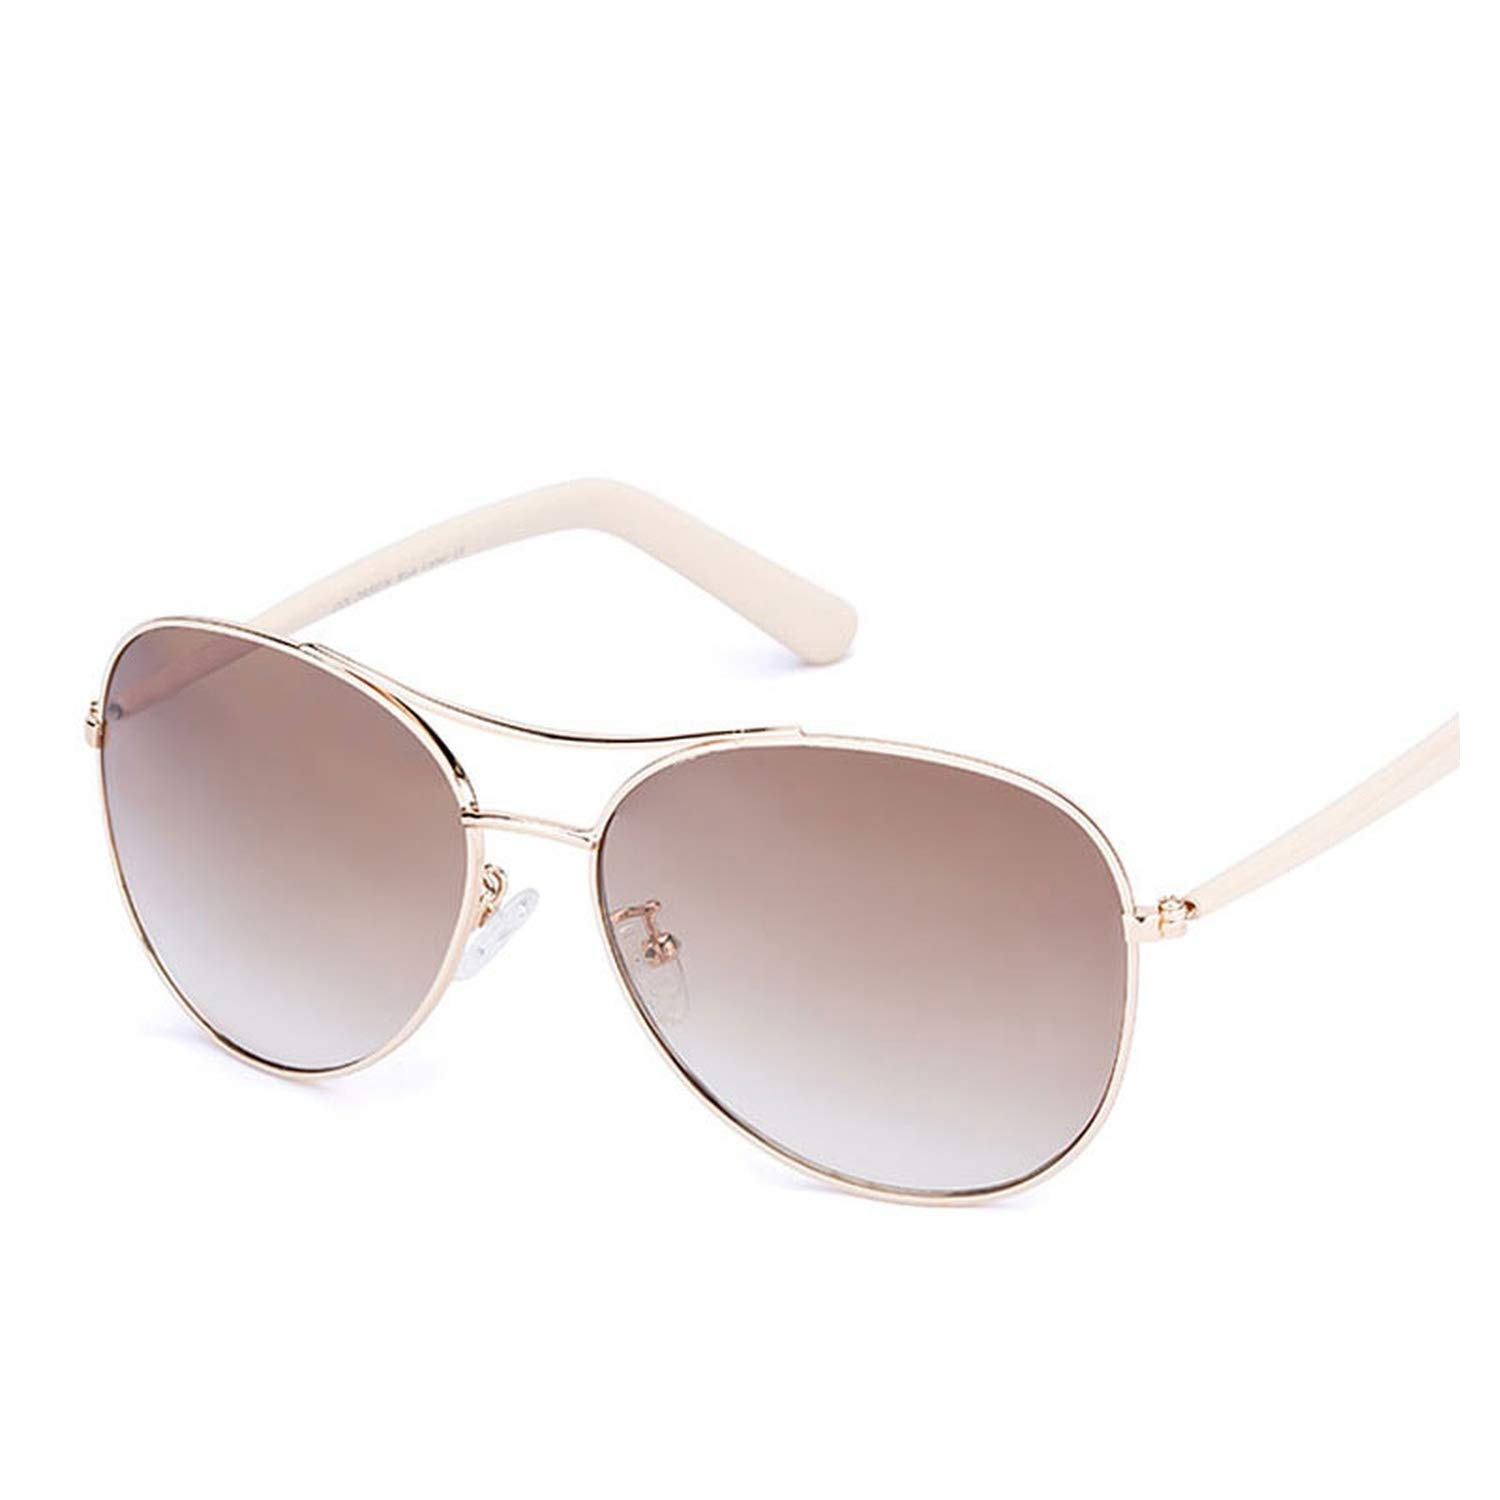 b614f58c9 Amazon.com: Sunglasses Women Fashion Gold Frame Classic Unisex Sun Glasses  2019 Outdoor Eyewear UV400,brown,C: Clothing